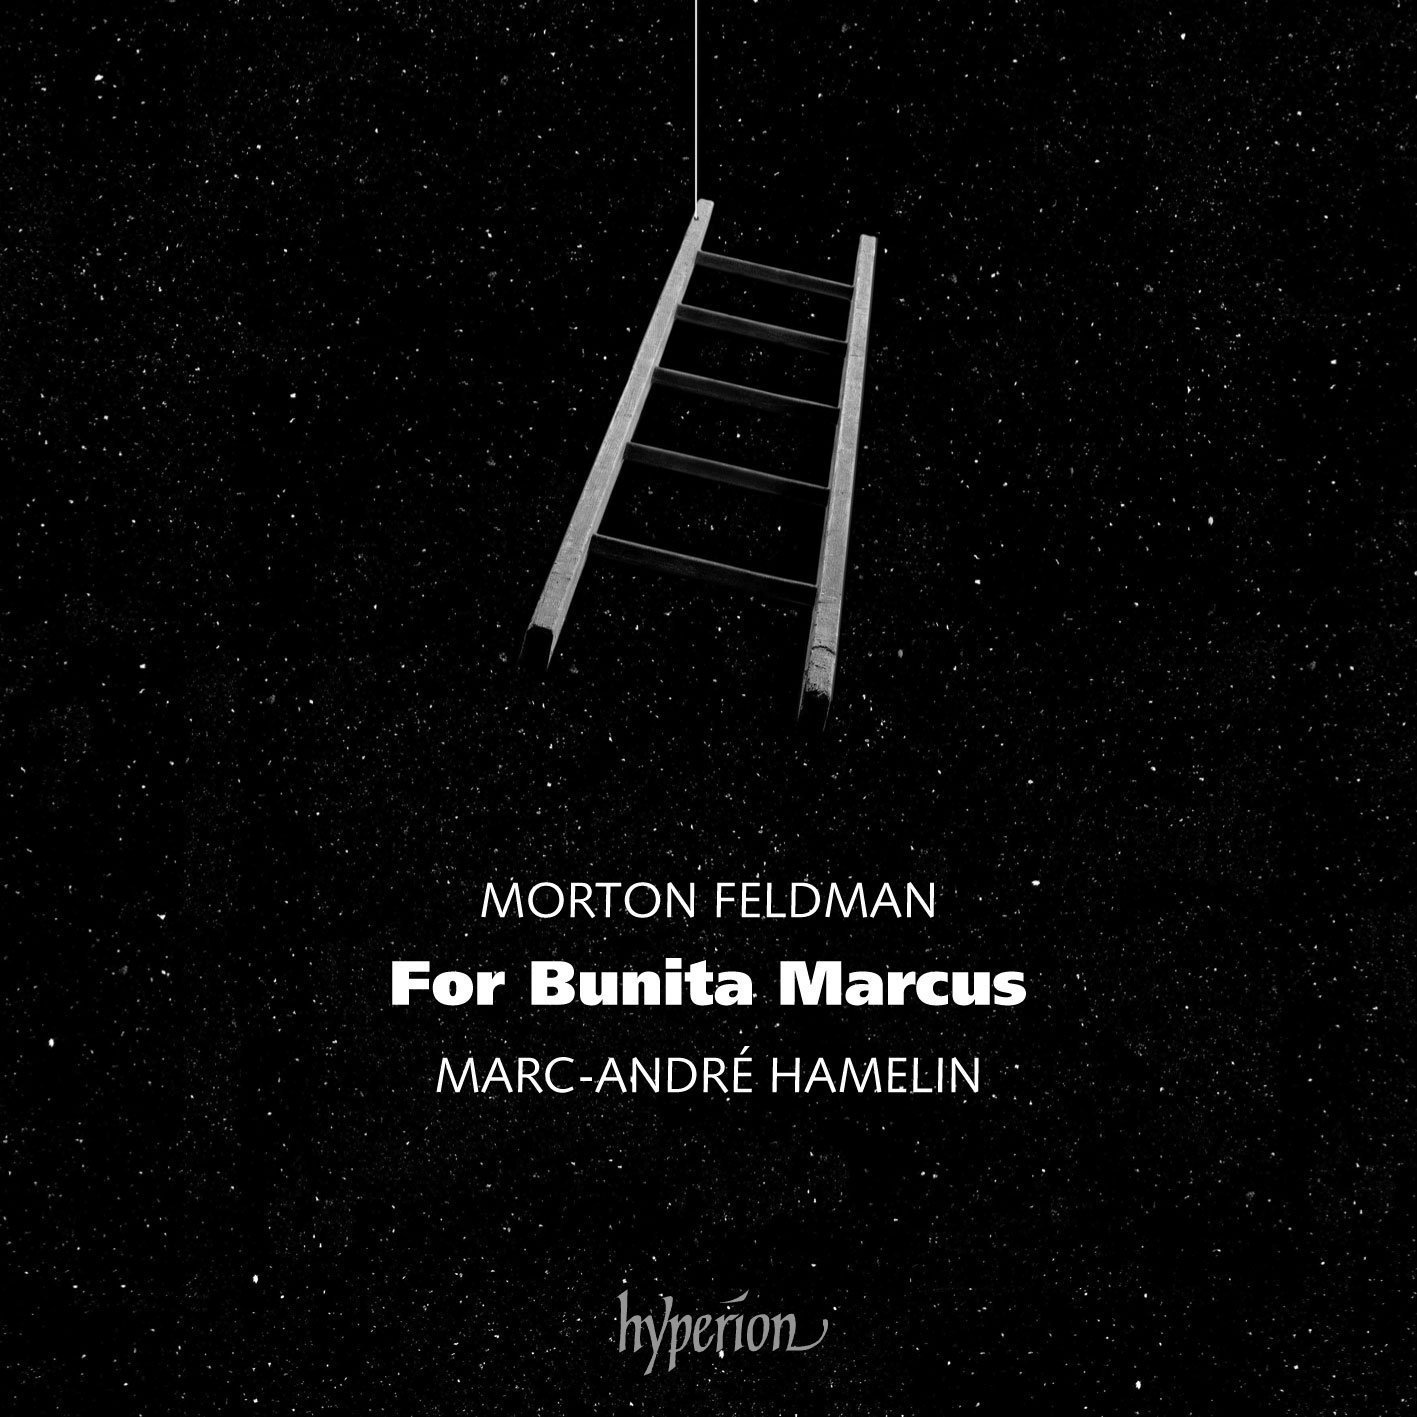 For Bunita Marcus, Hamelin, Feldman